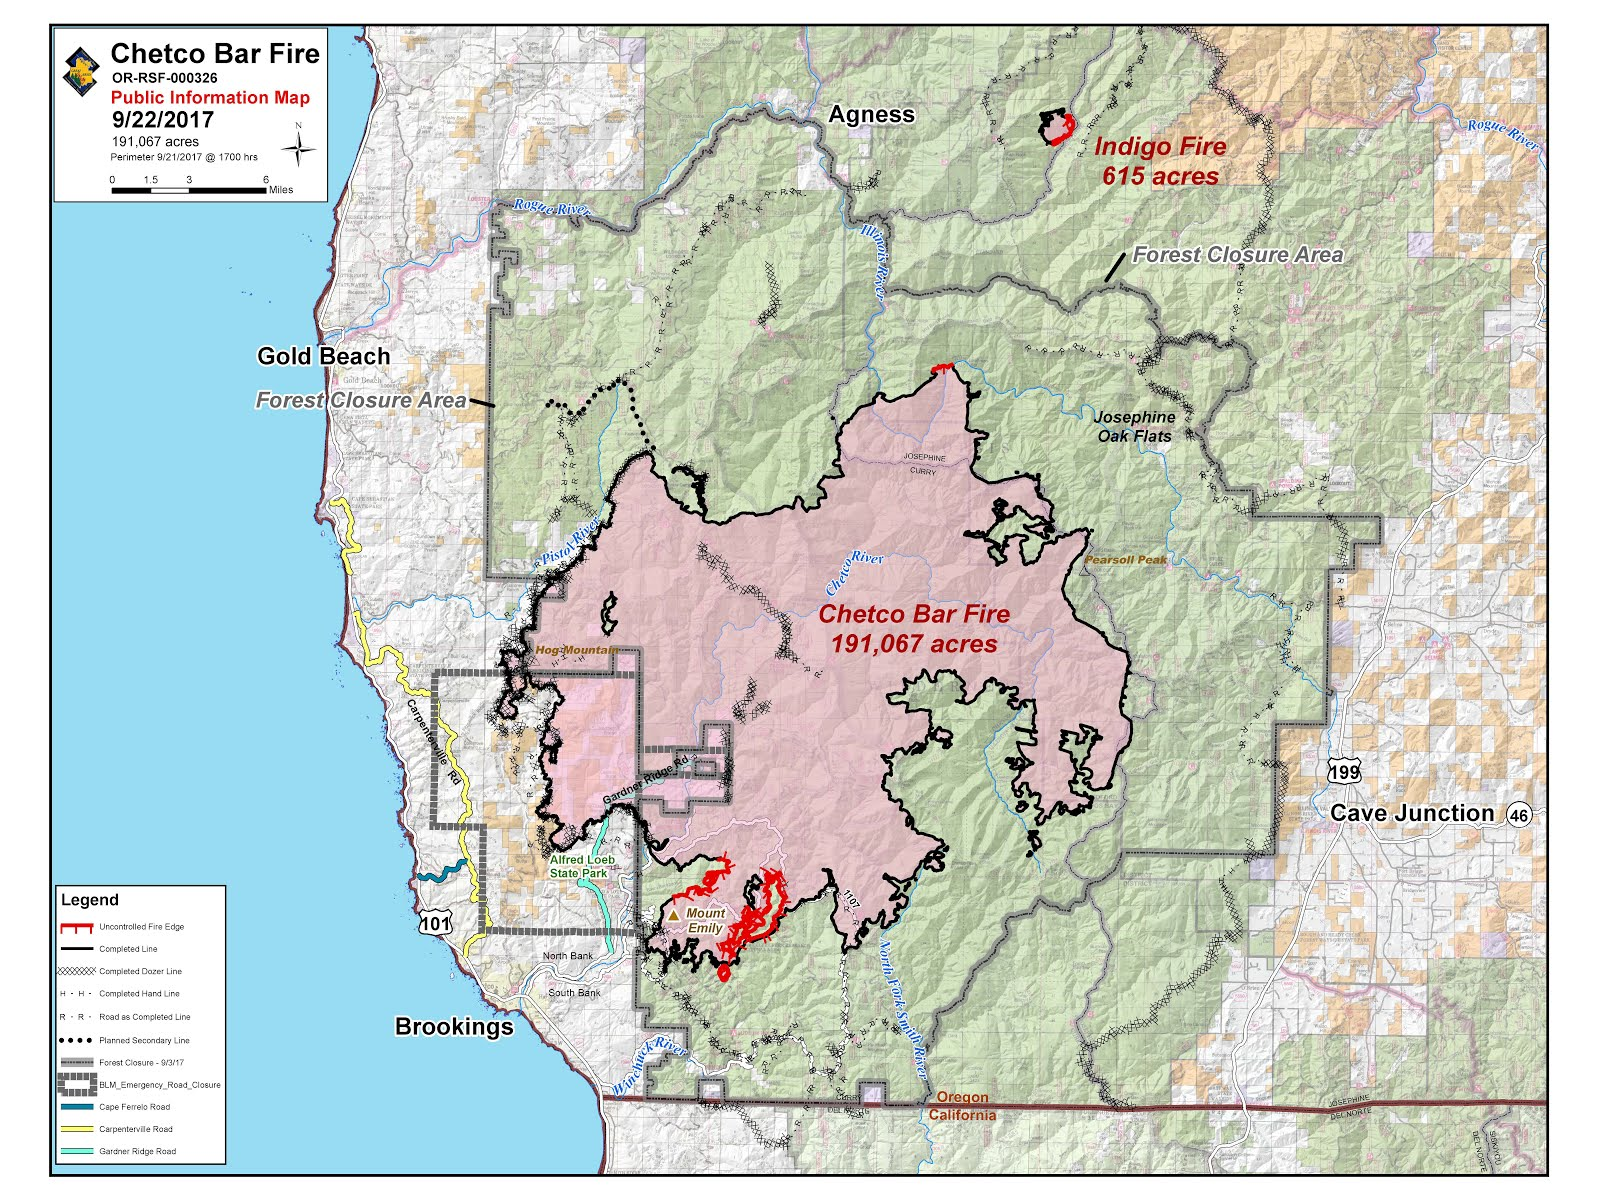 temporary flight restrictions tfr are in effect over the chetco bar fire area for more information see http tfr faa gov